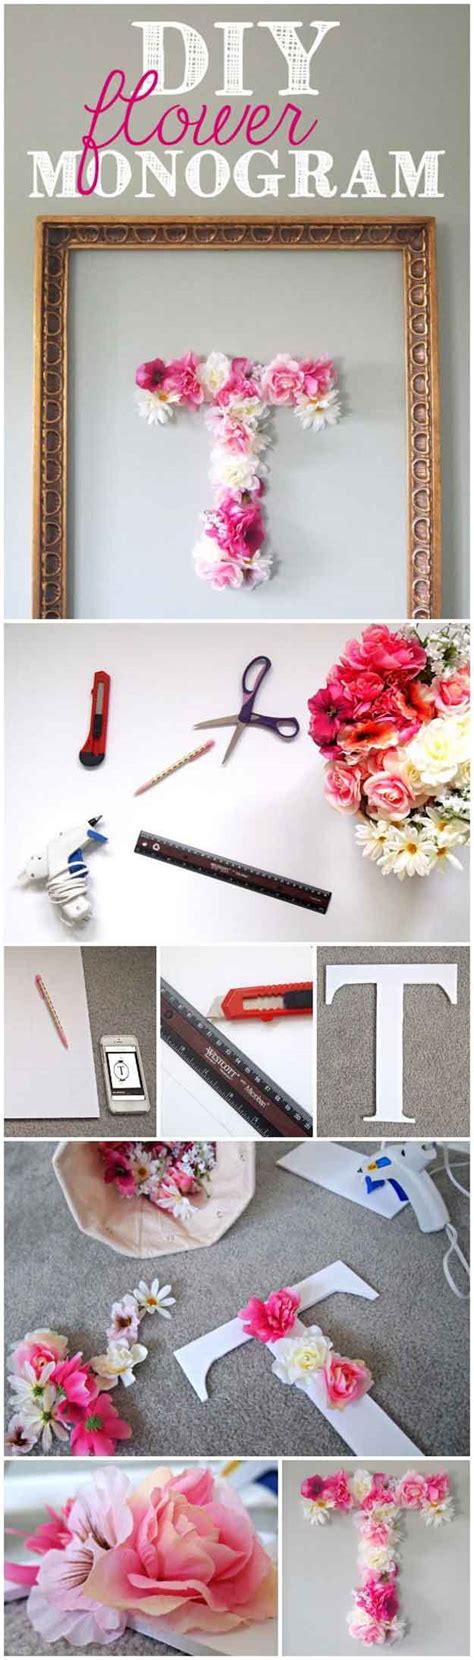 easy diy bedroom diy projects for teens bedroom diy ready